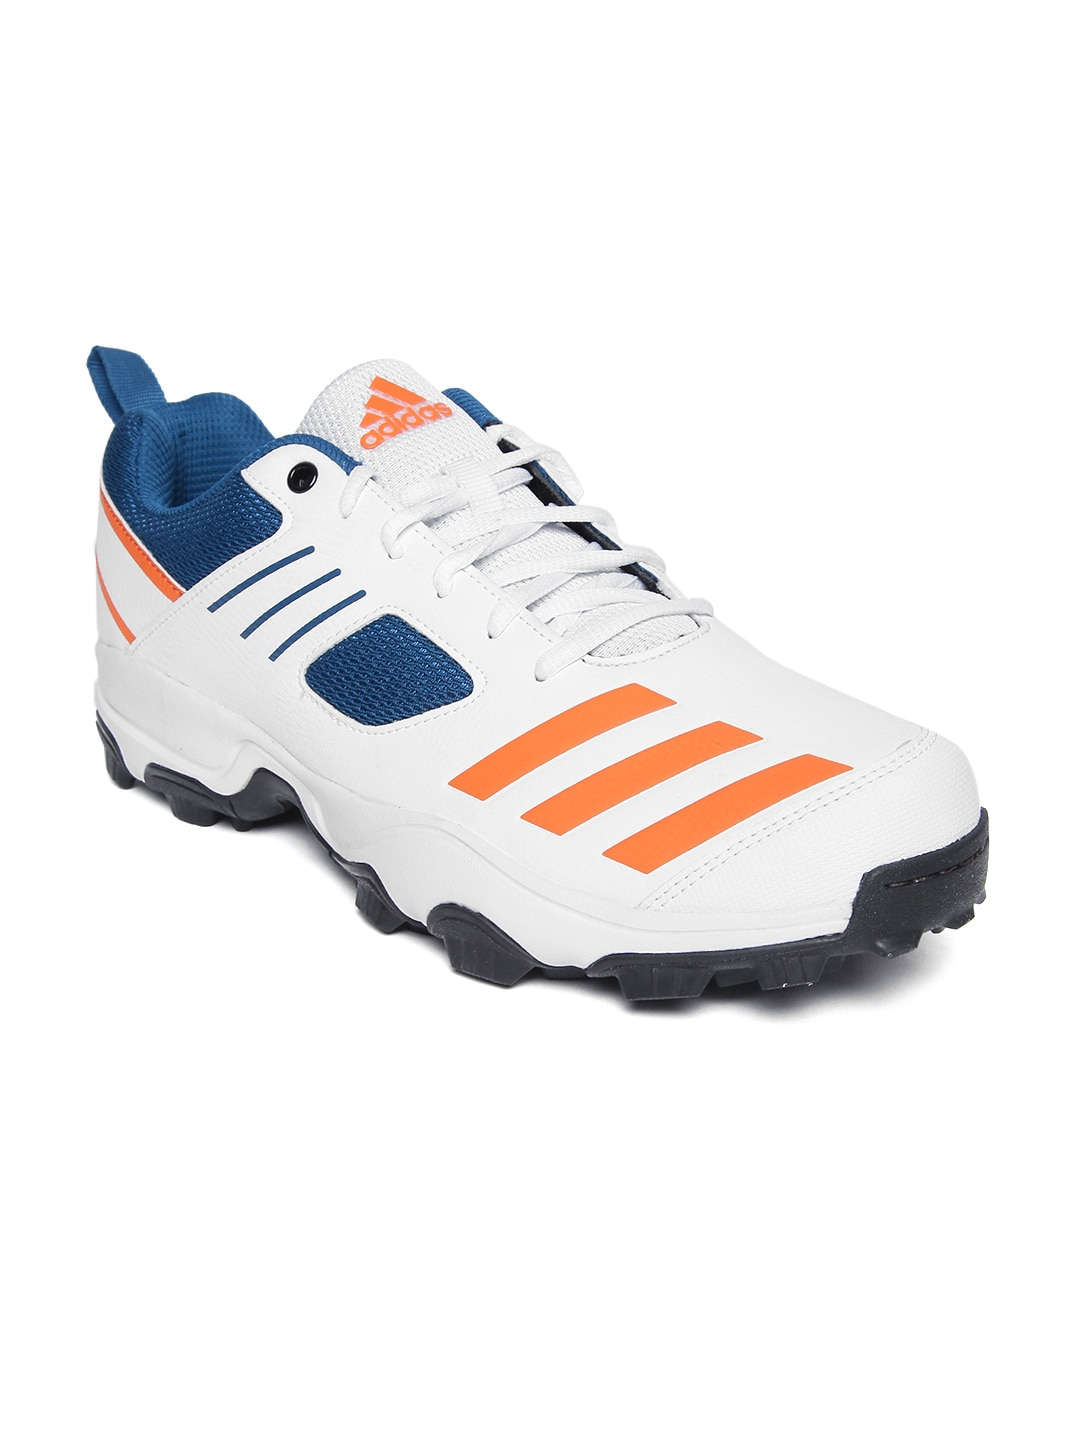 36cd731a7348 Adidas Cricket Shoes - Buy Adidas Cricket Shoes Online in India